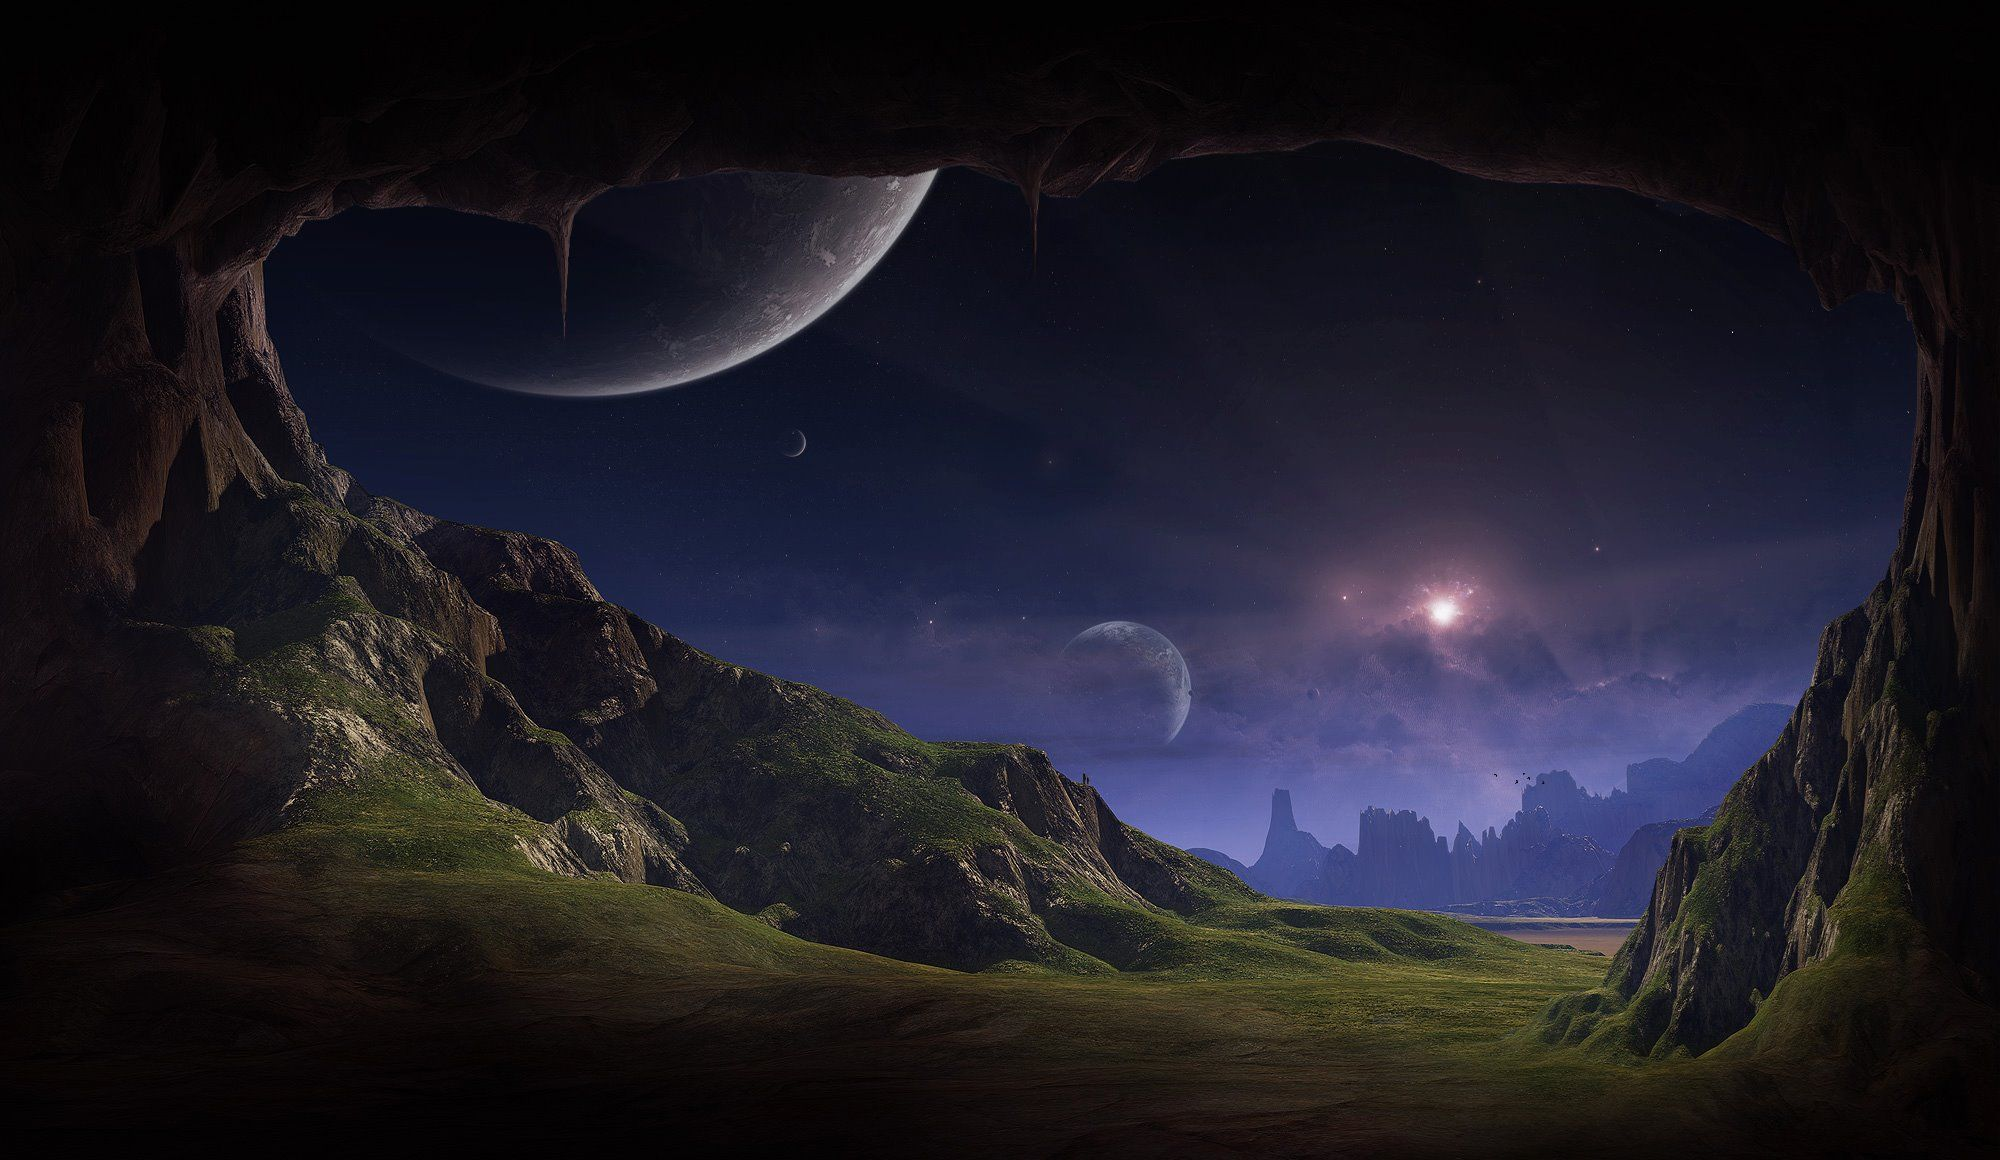 Pin By Brian Mohs On Moon Fantasy Landscape Planets Wallpaper Landscape Wallpaper